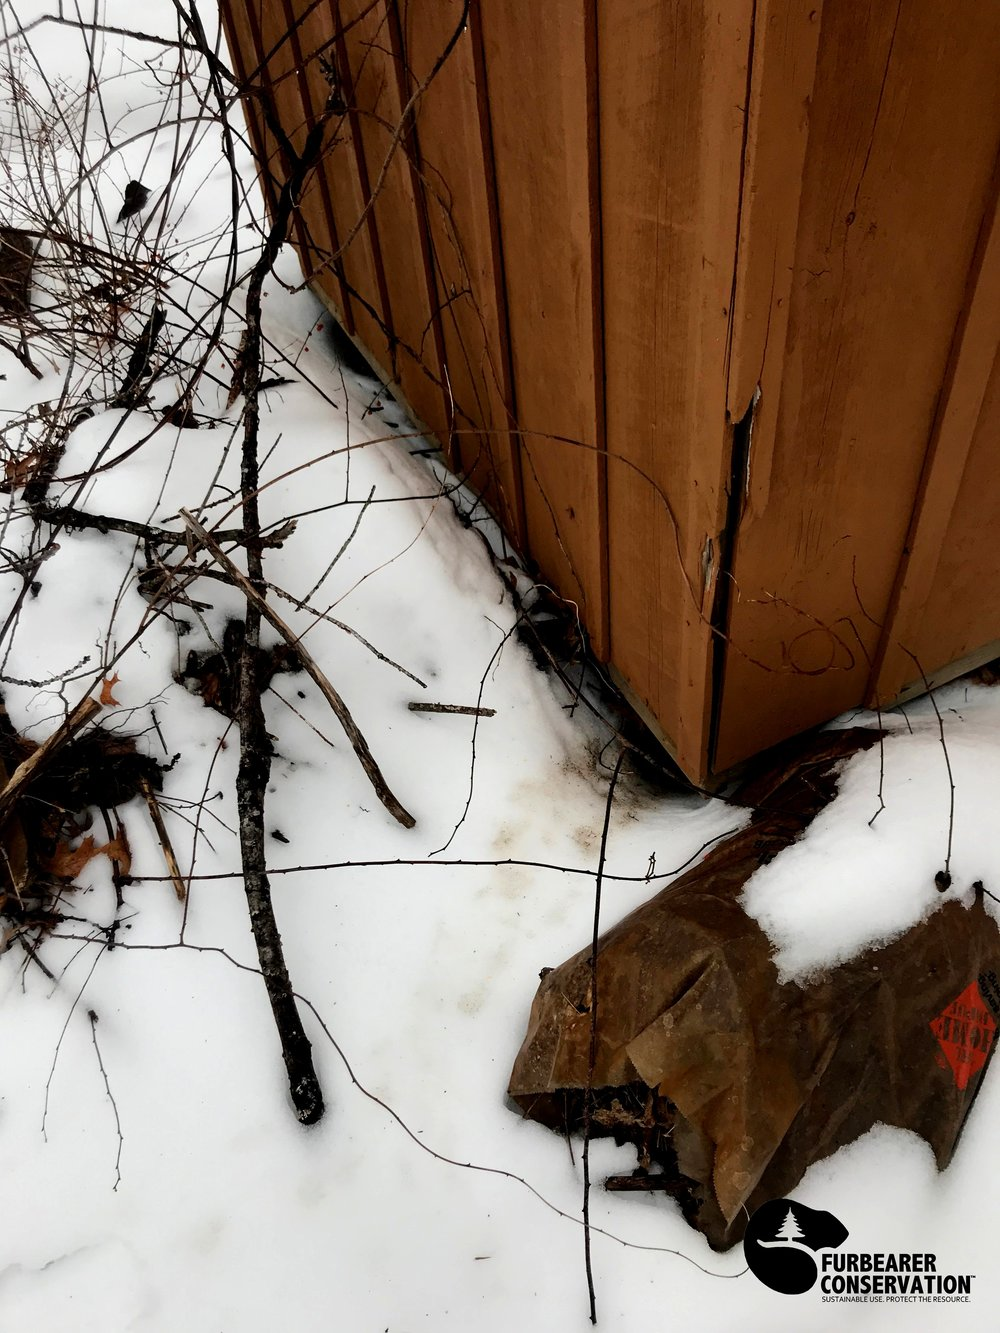 A well traveled skunk den in February, located under a shed in an urban backyard. (Photo   Furbearer Conservation)